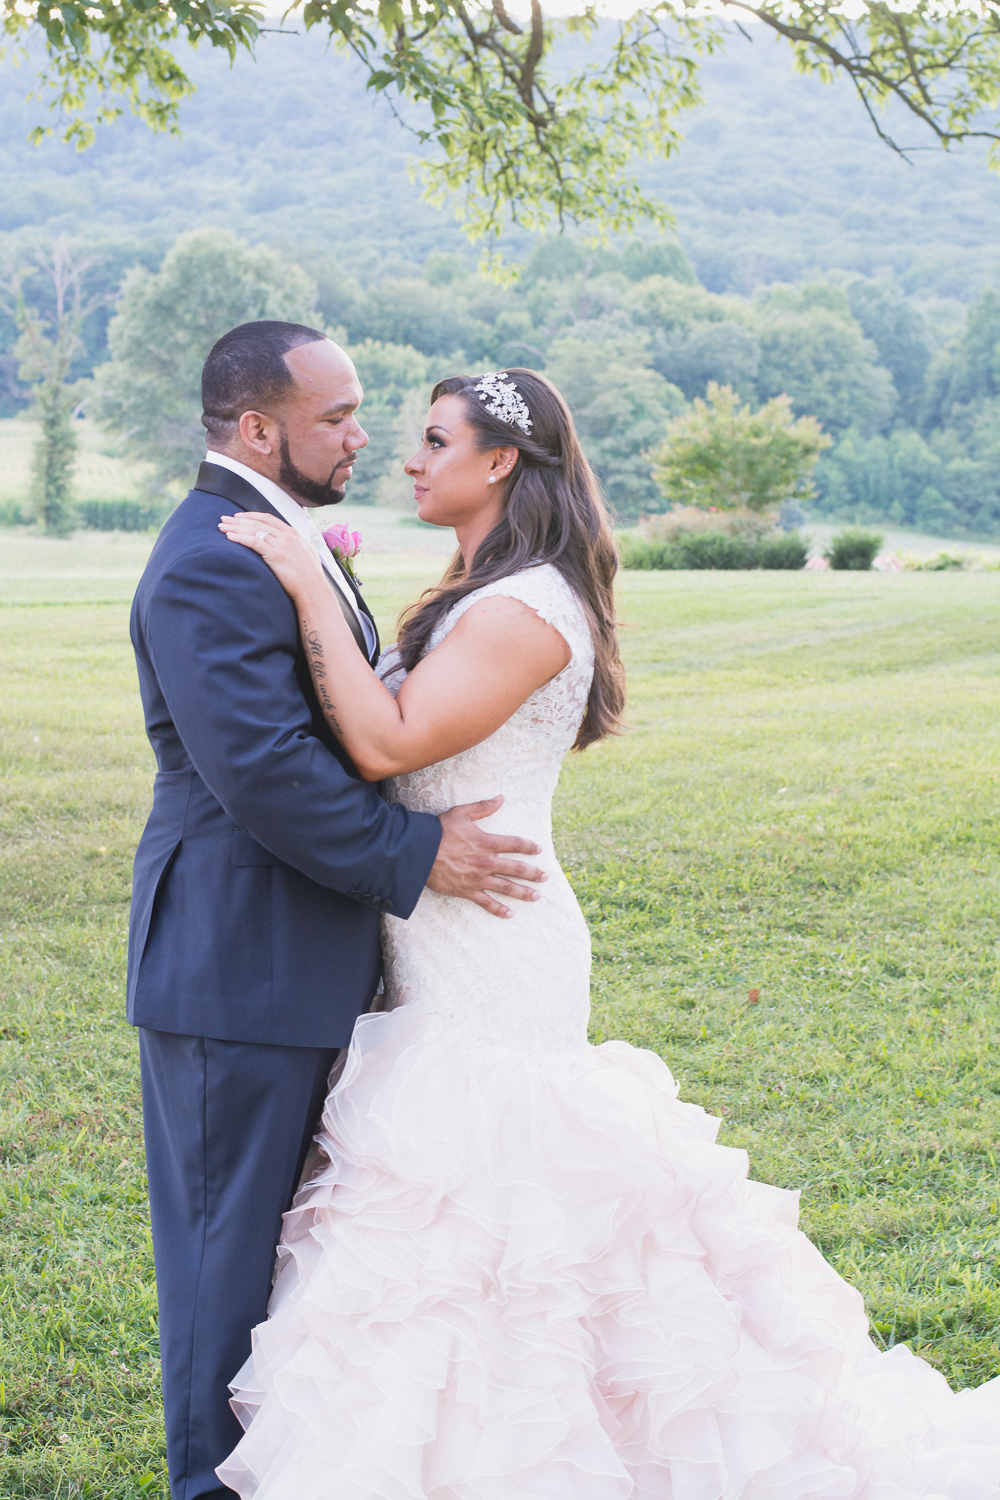 Springfield Manor Winery & Distillery Wedding Bride and Groom Photo